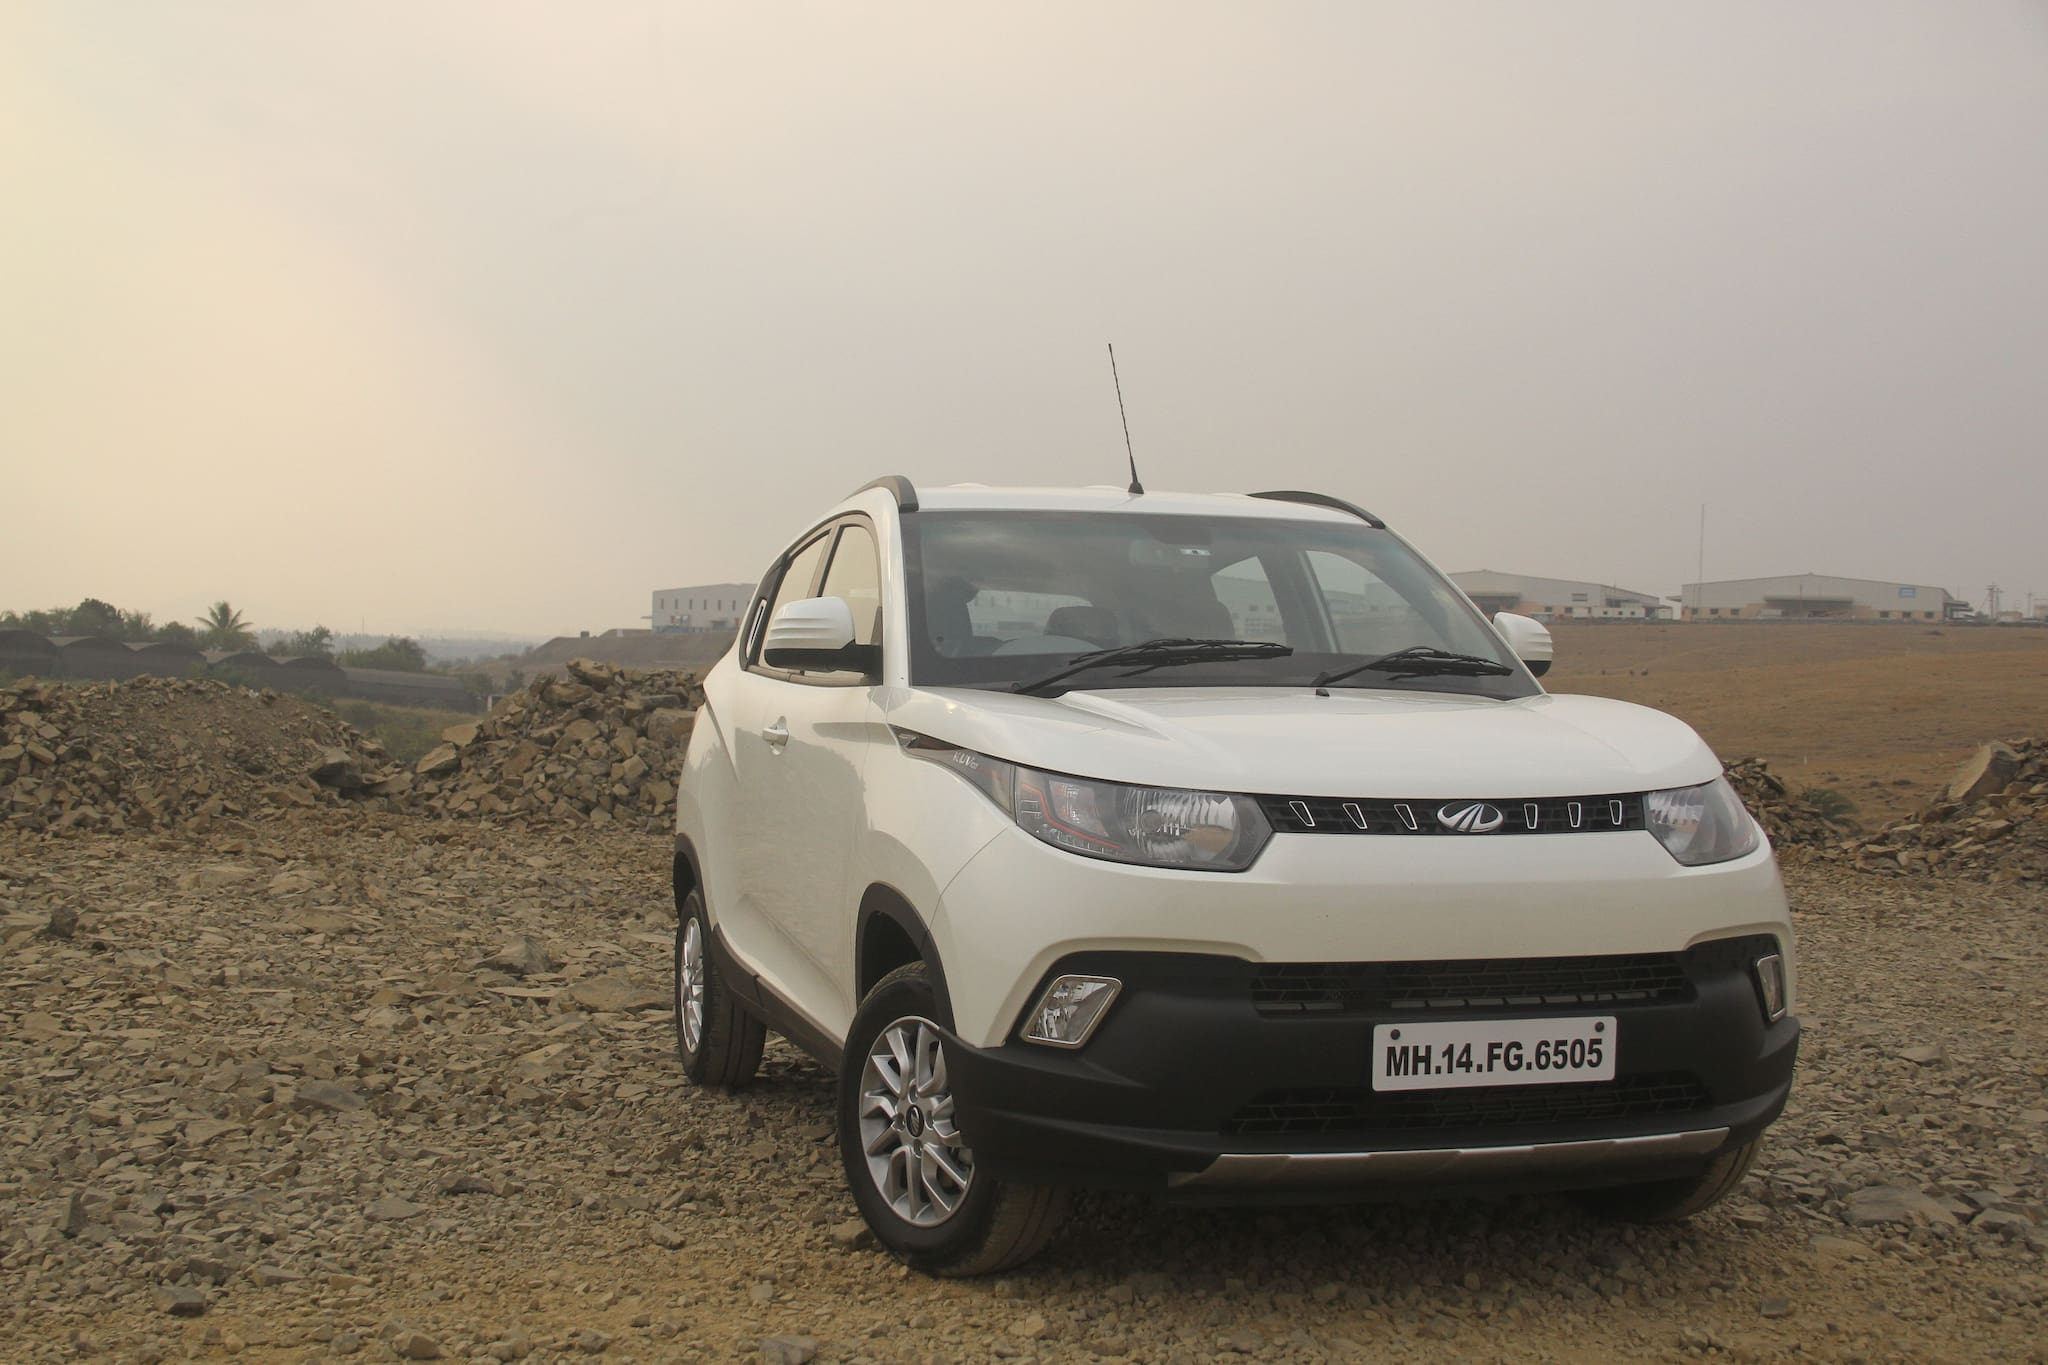 Mahindra KUV1OO : First Drive Review | Petrol and Diesel driven!